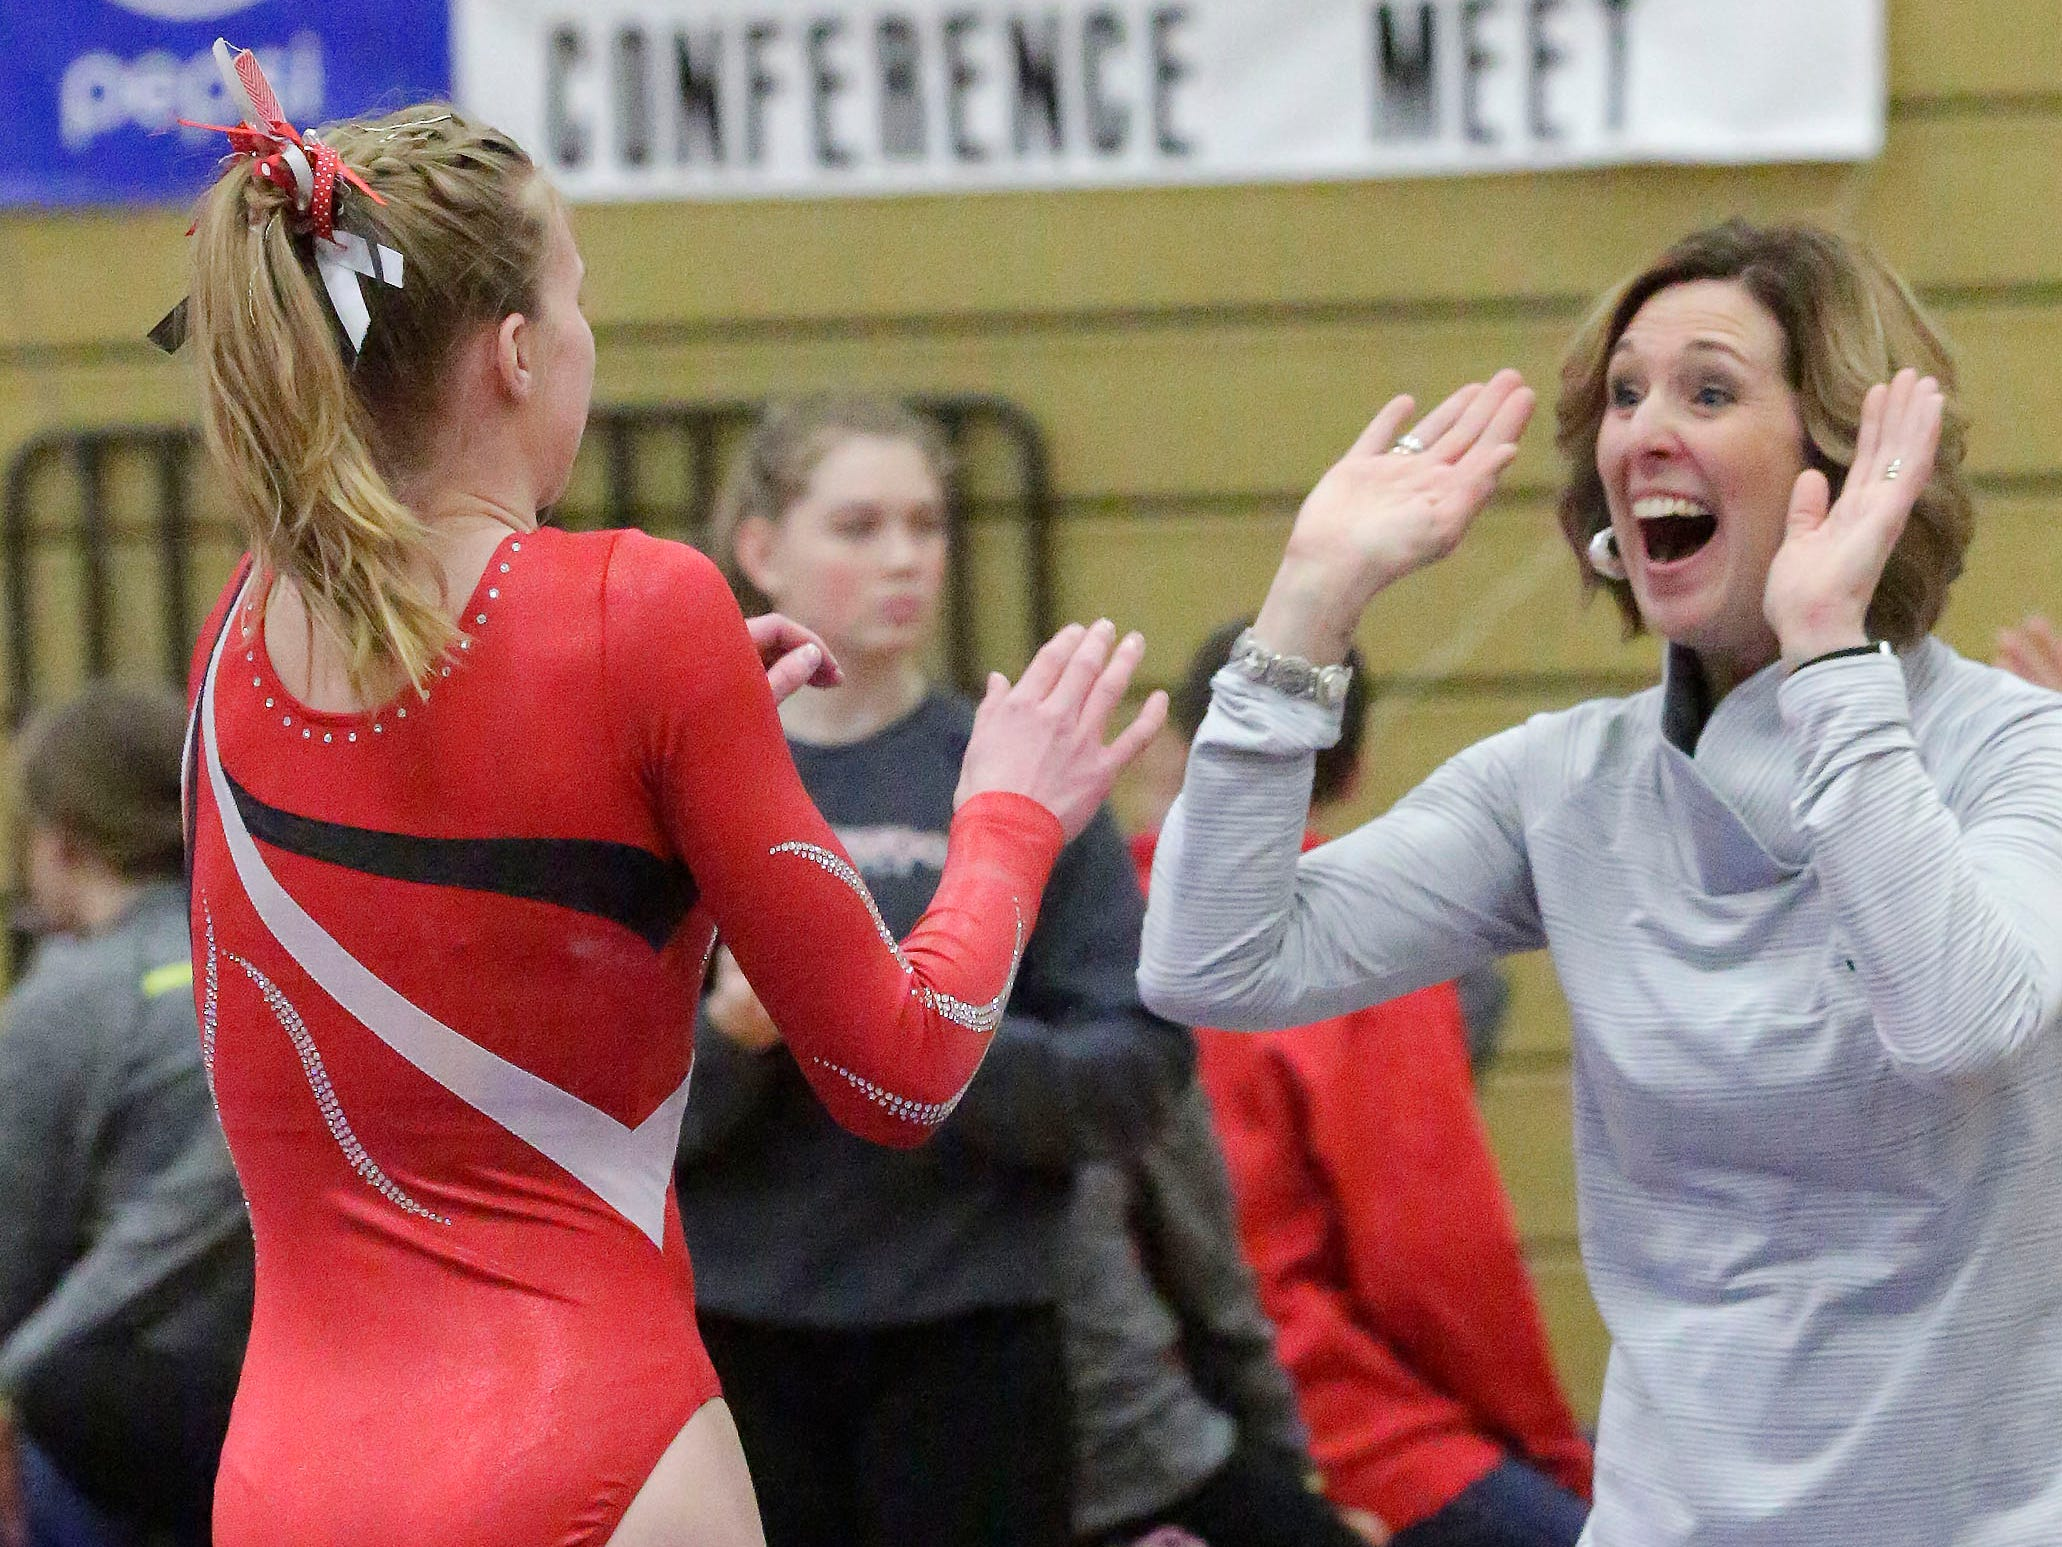 Manitowoc Lincoln coach Jacque Bartow is all smiles following a balance beam routine by an unidentified gymnasts during the WIAA Eastern Valley Conference Gymnastics Meet at Sheboygan South, Friday, February 15, 2019, in Sheboygan, Wis.